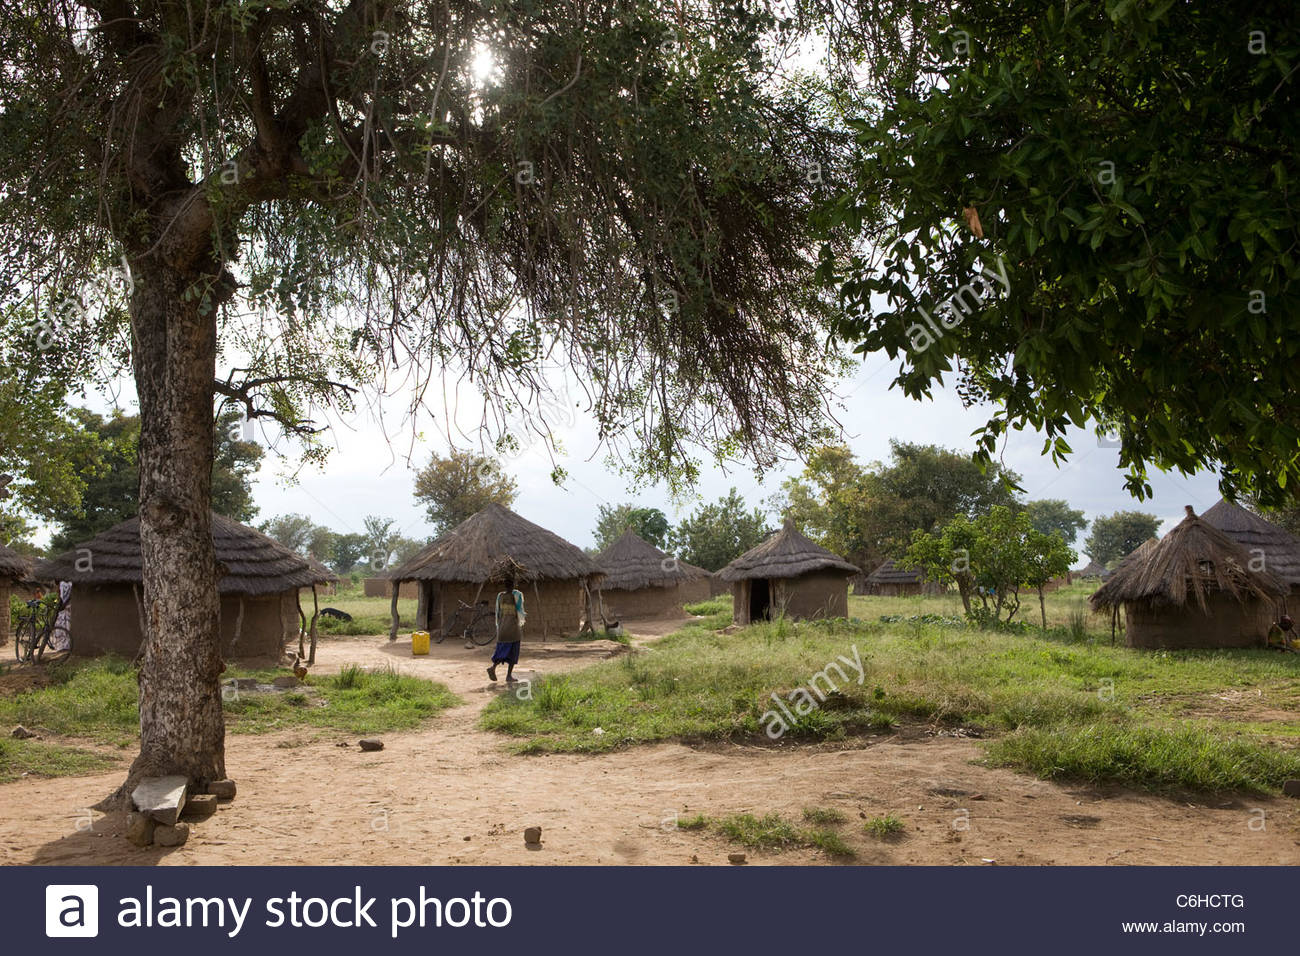 Acowa refugee camp with mud and thatch huts - Stock Image